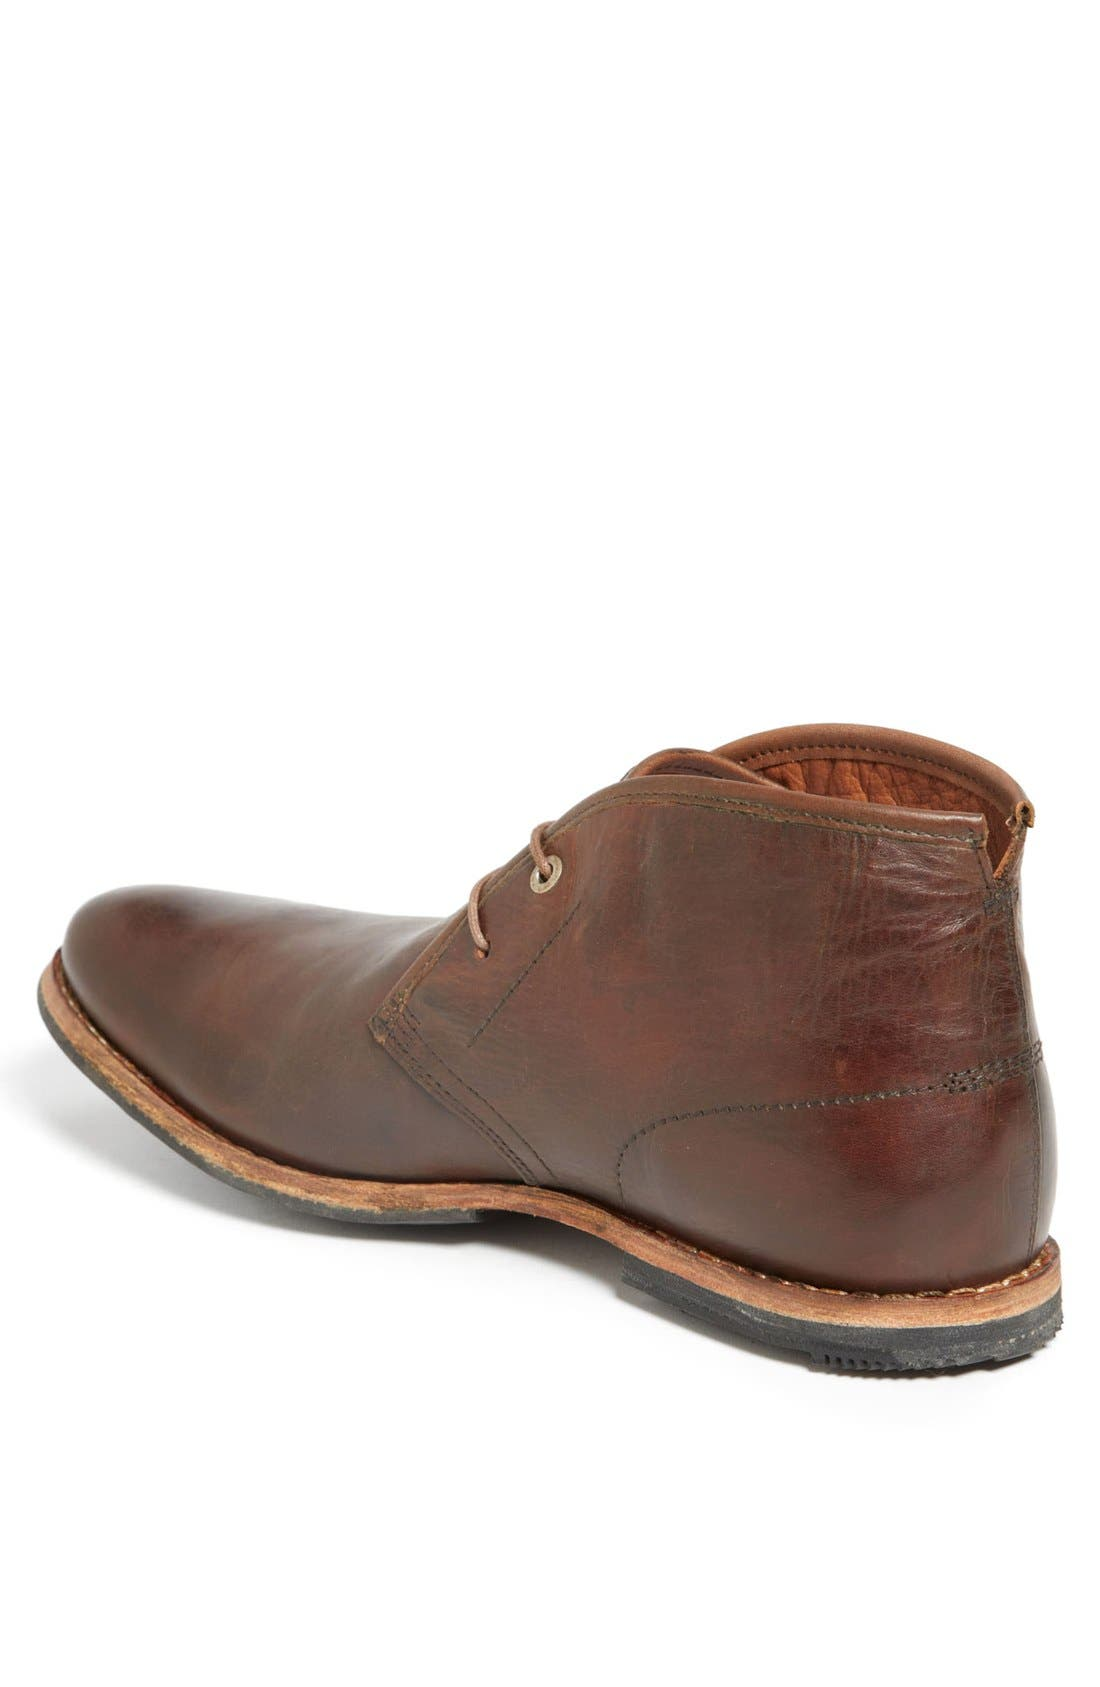 Wodehouse History Chukka Boot,                             Alternate thumbnail 7, color,                             BURNISHED DARK BROWN LEATHER